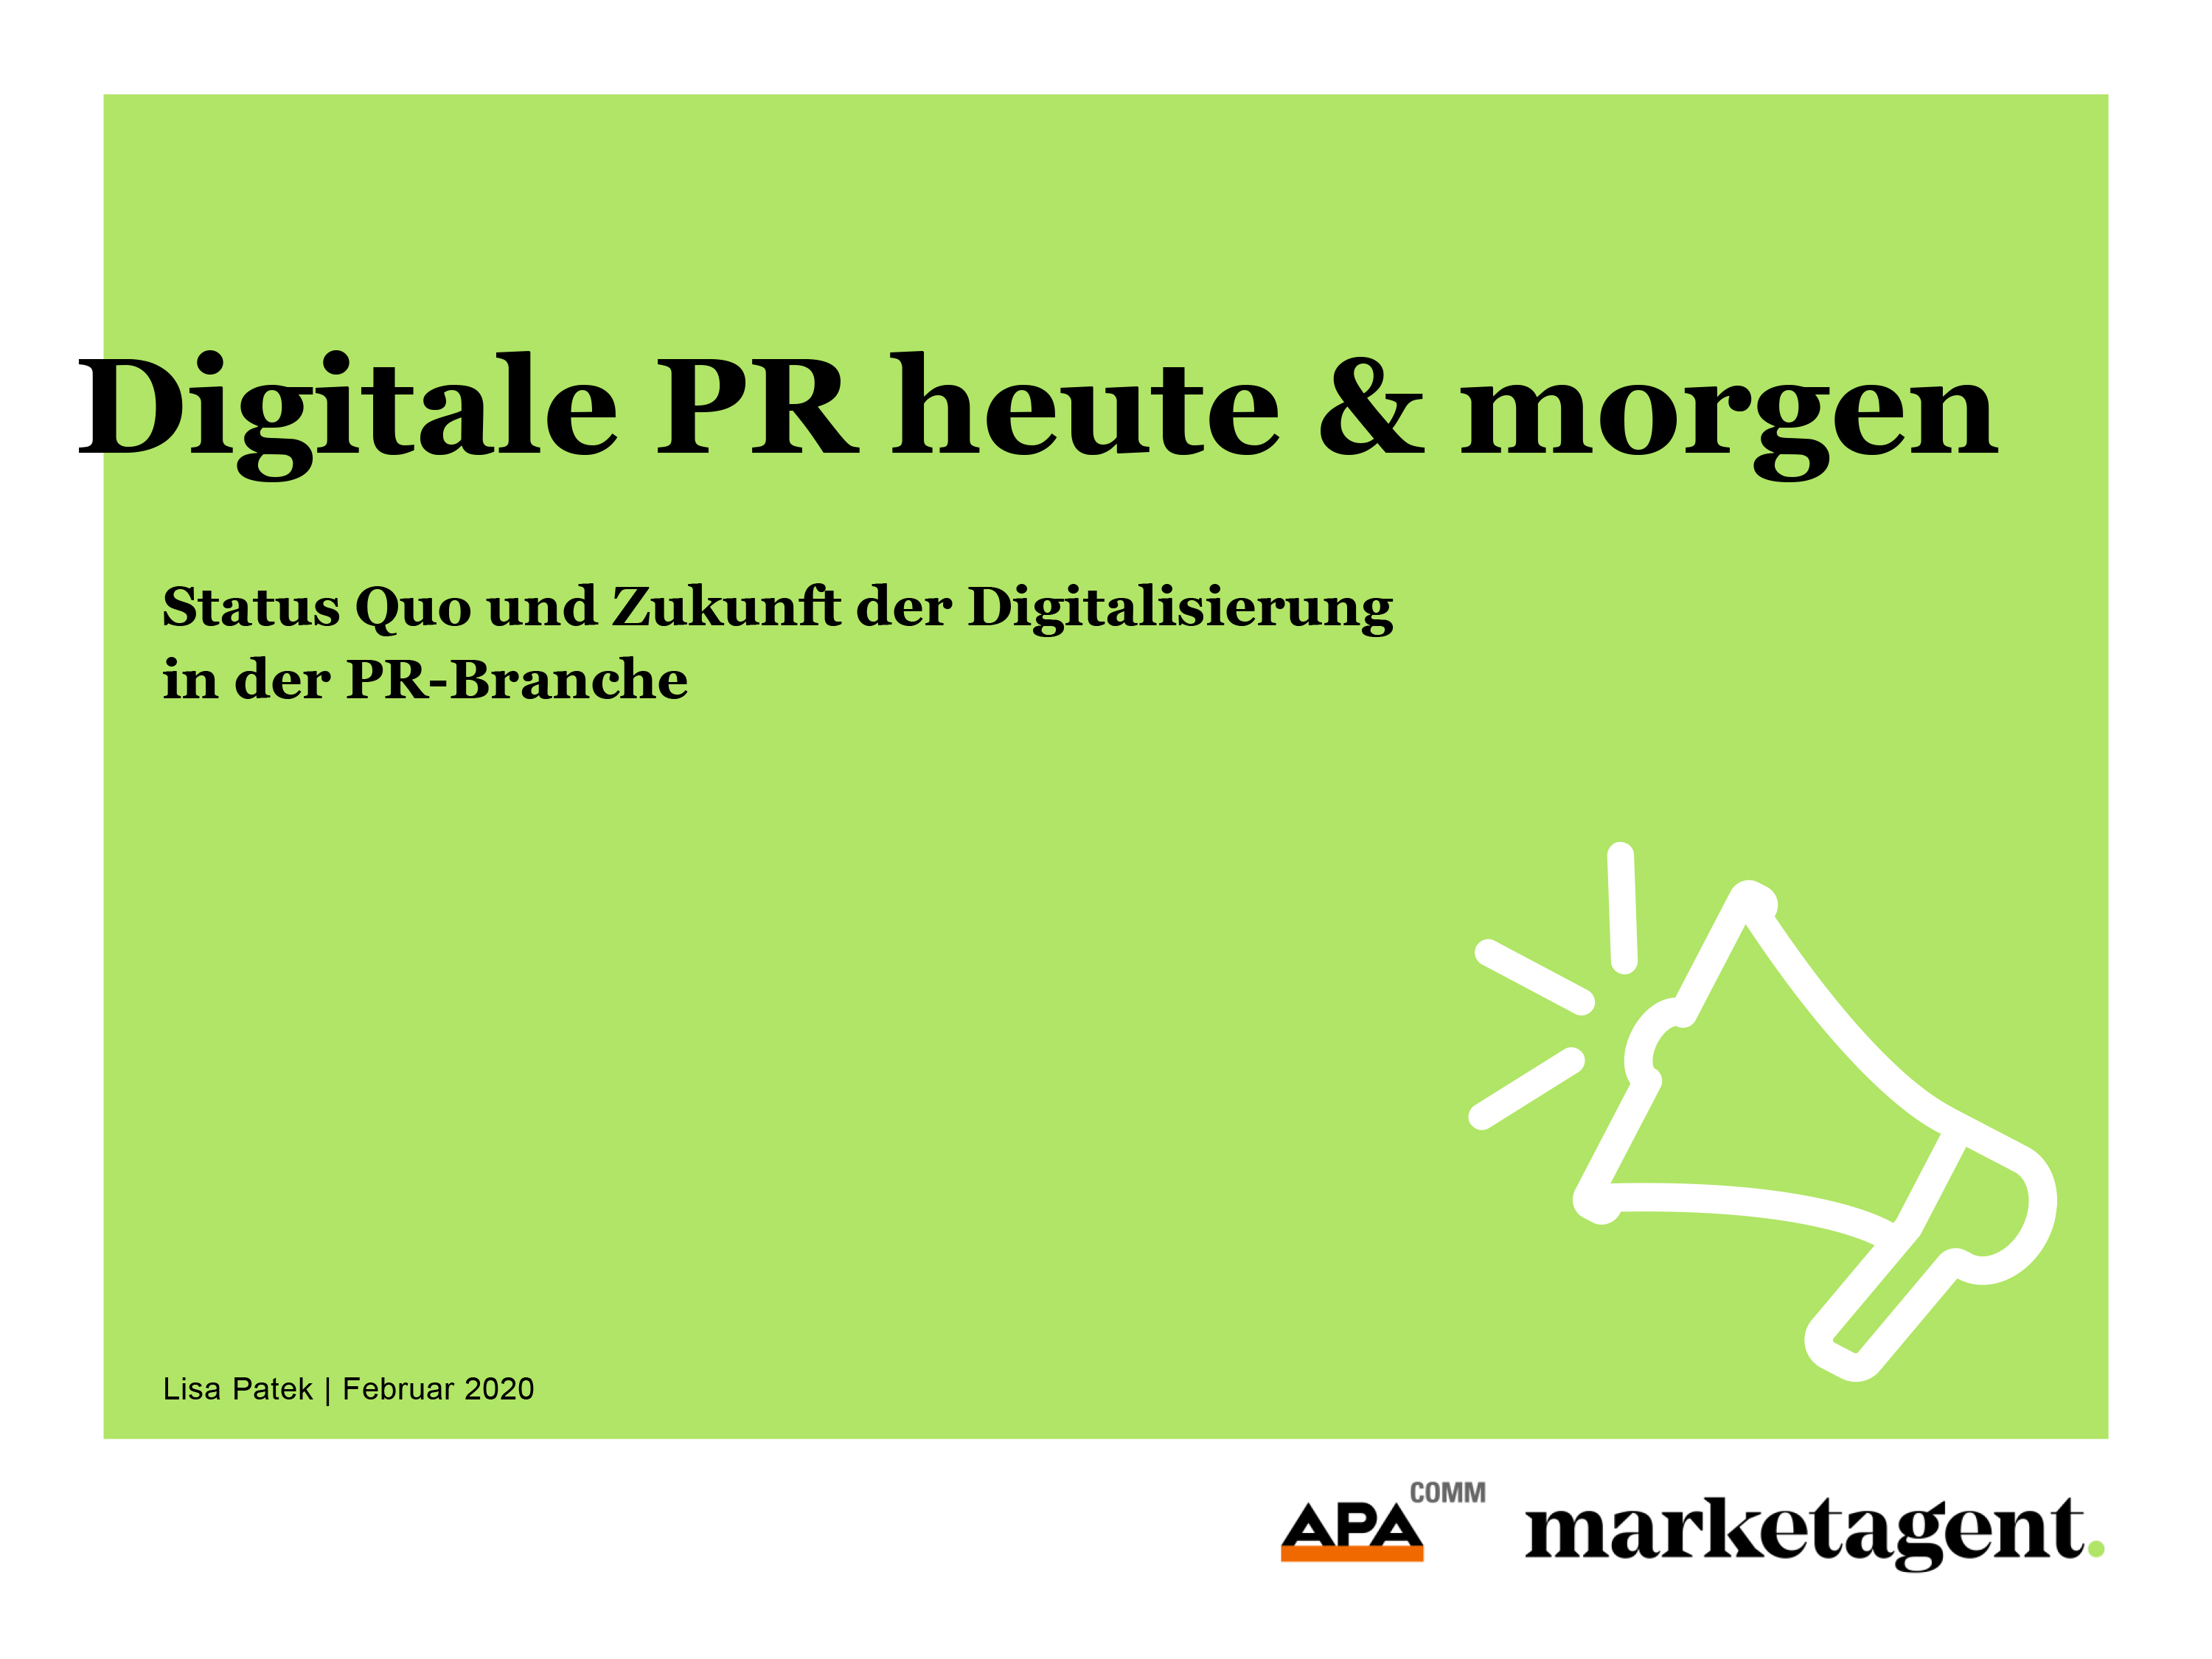 Studiendownload: Digitale PR heute & morgen